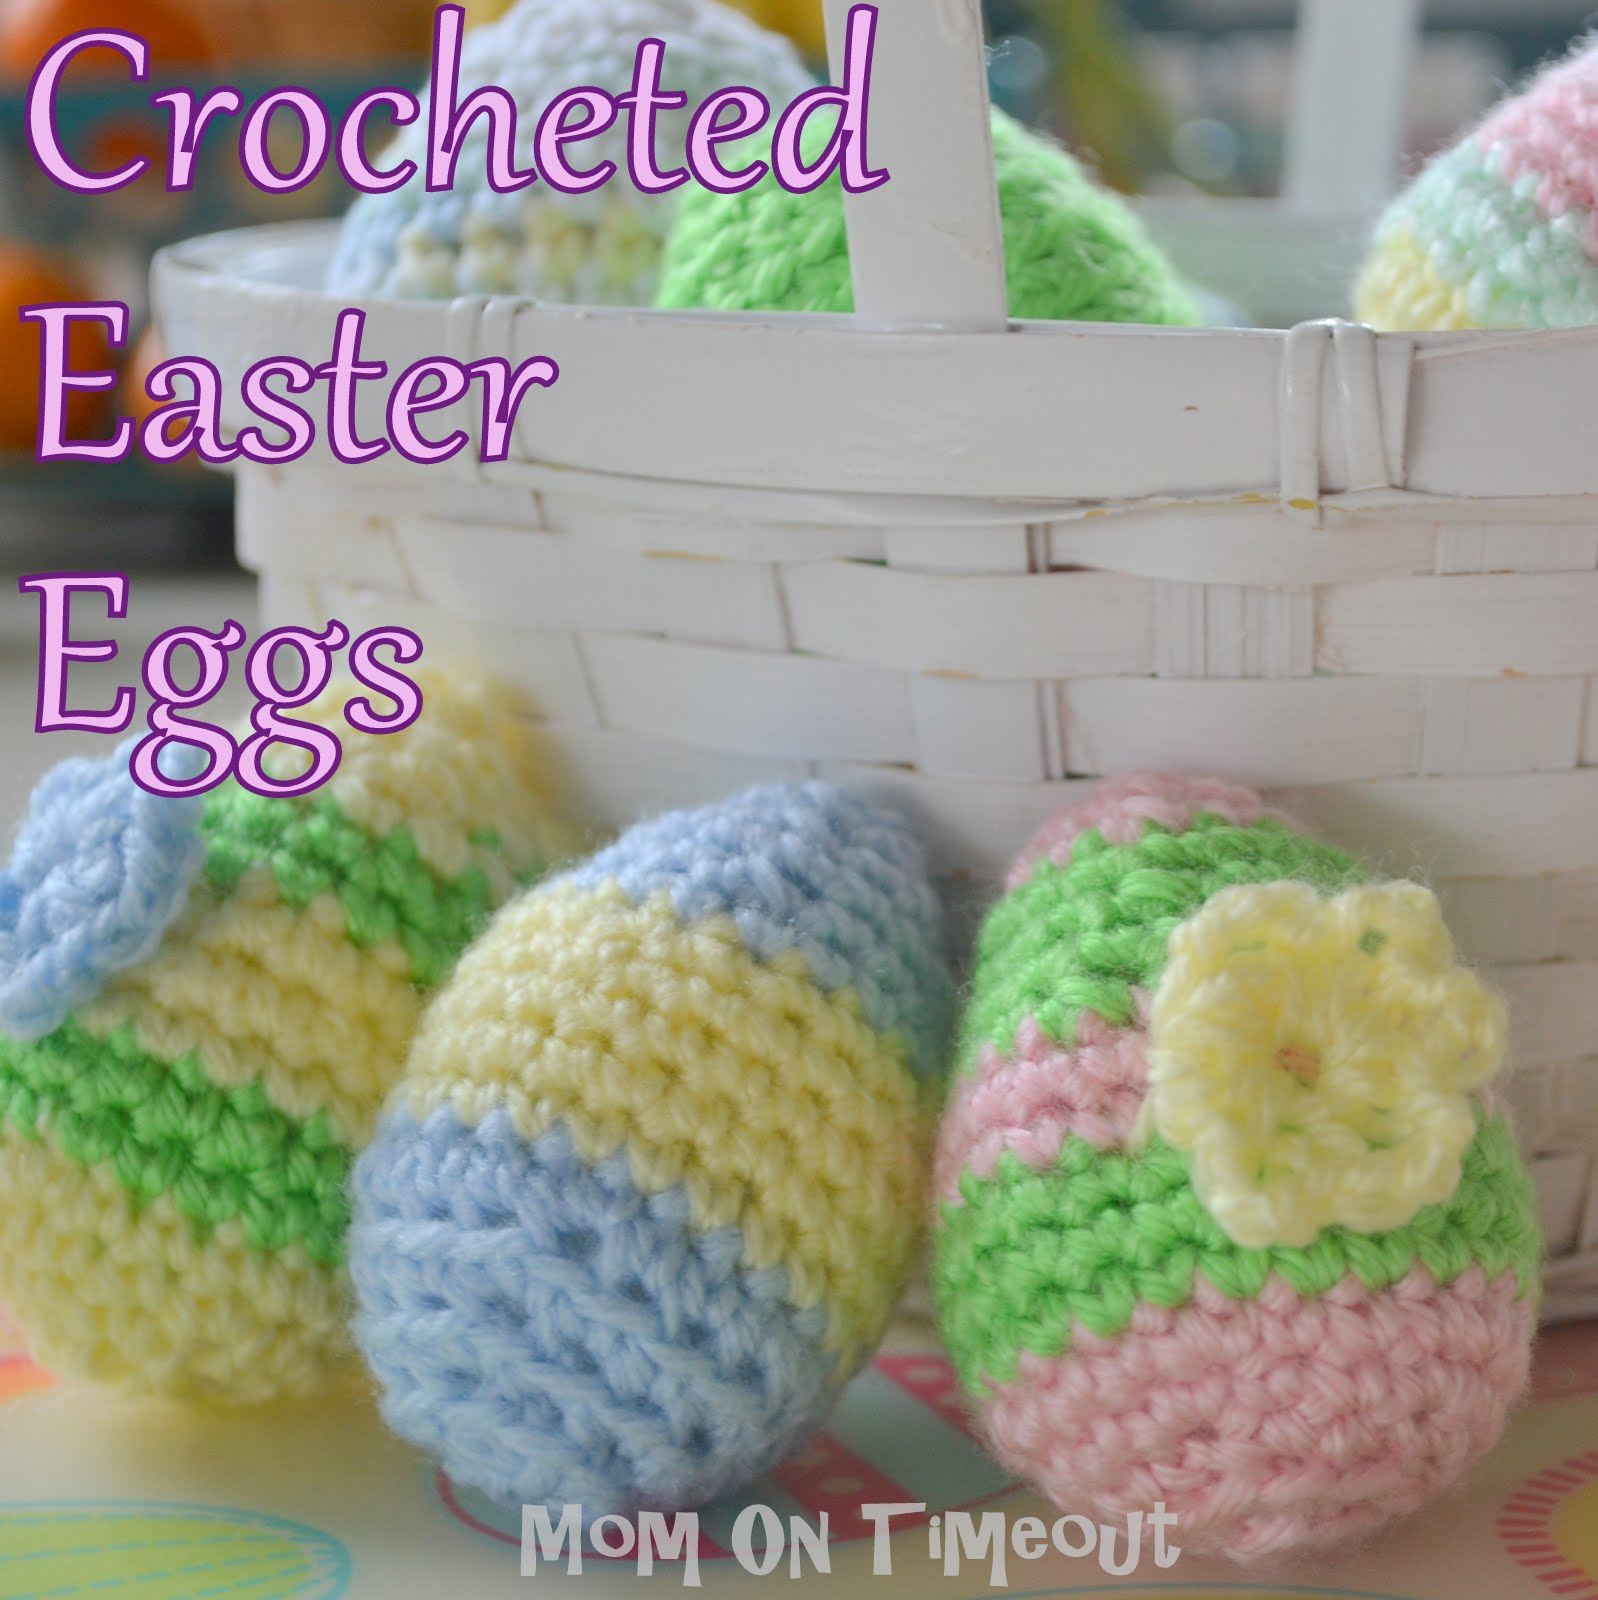 Crocheting Easter Eggs : Crocheted Easter Eggs & Pattern - Mom On Timeout